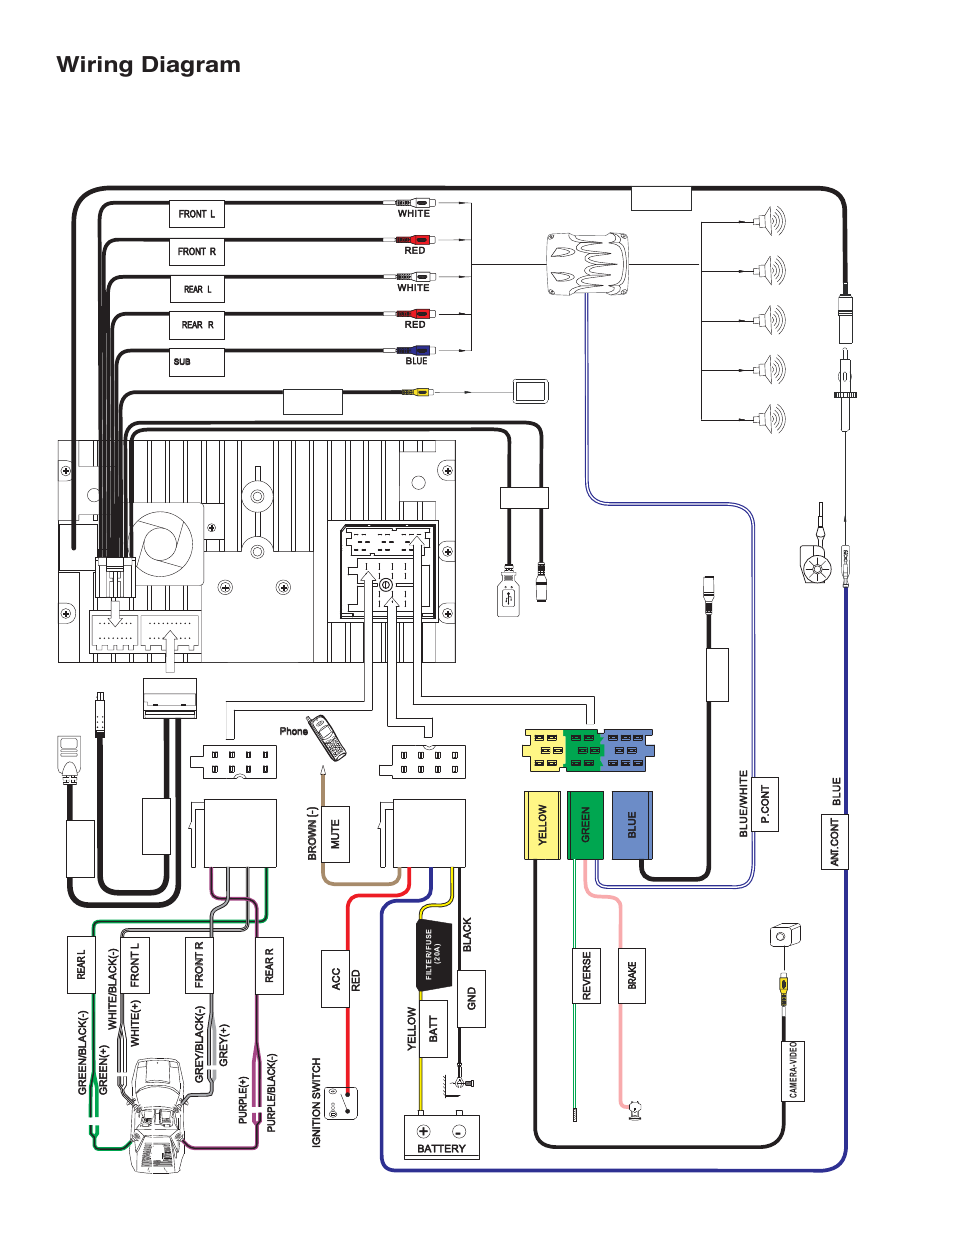 wiring diagram | jensen vm9224 user manual | page 4 / 12 jensen radio wiring diagram